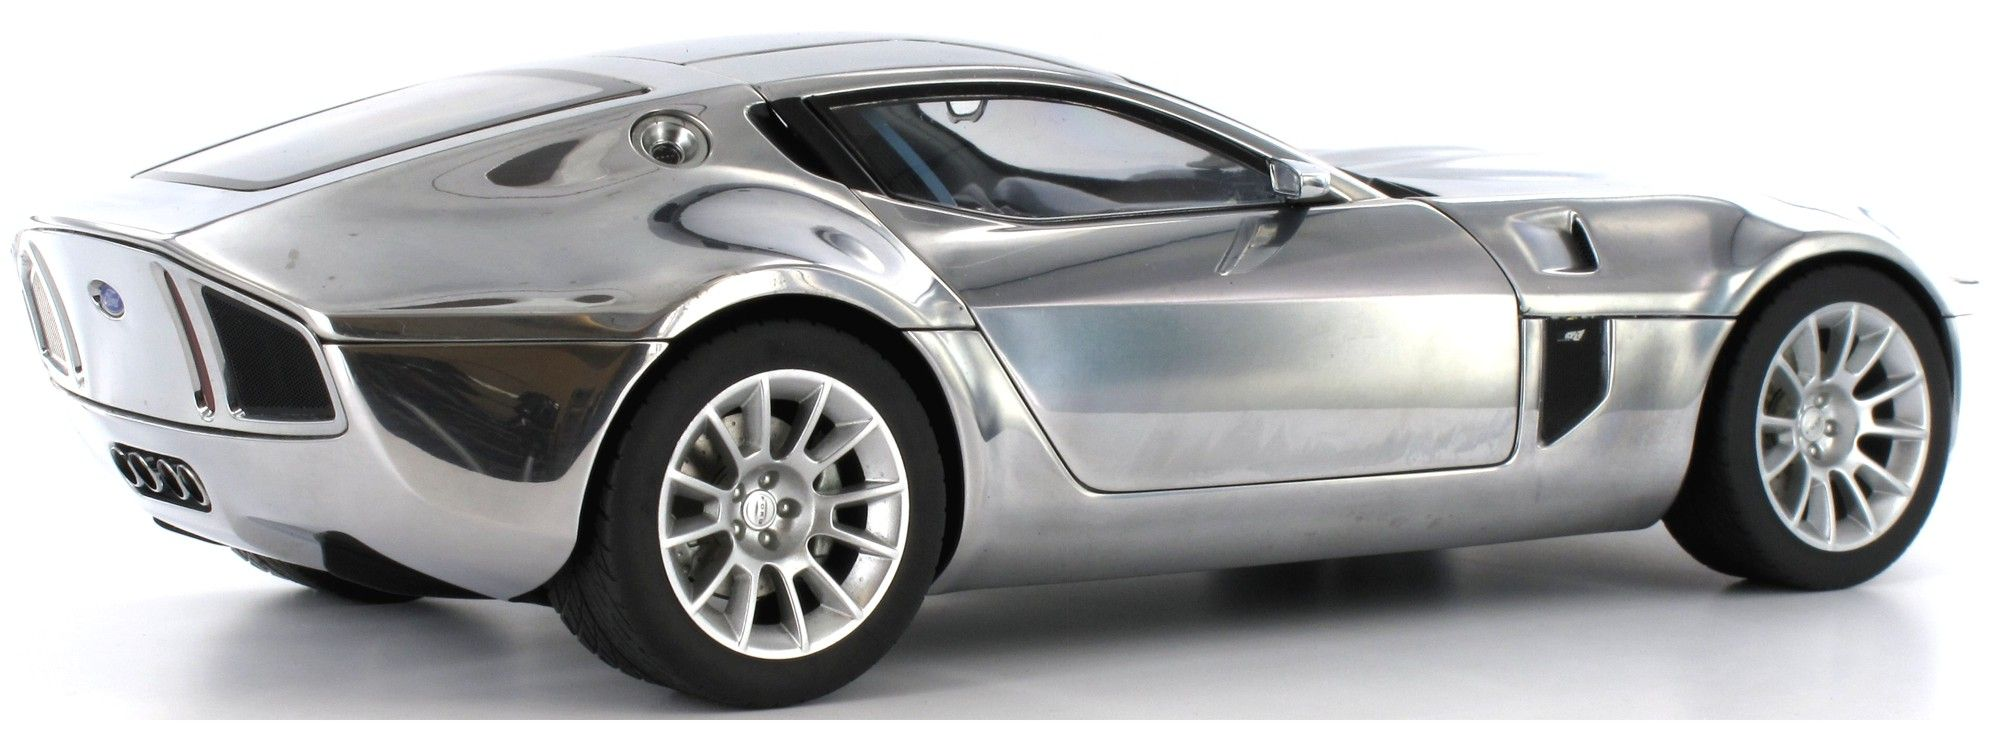 ford-shelby-gr-1-concept-aluminium-casting-8